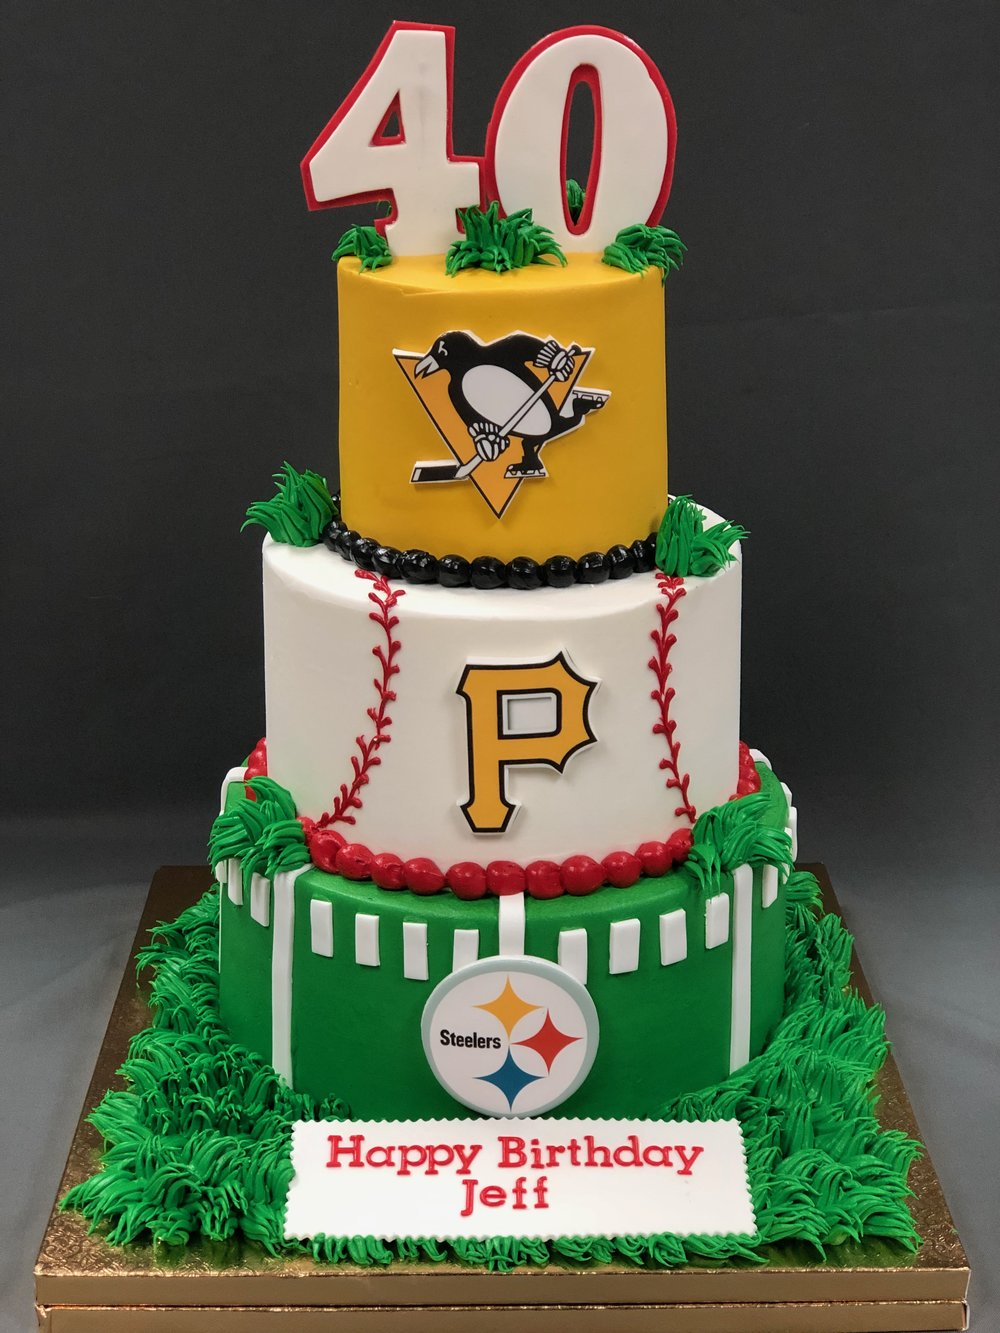 Phenomenal Pittsburgh Team Fans 40Th Birthday Cake Skazka Desserts Bakery Funny Birthday Cards Online Aeocydamsfinfo